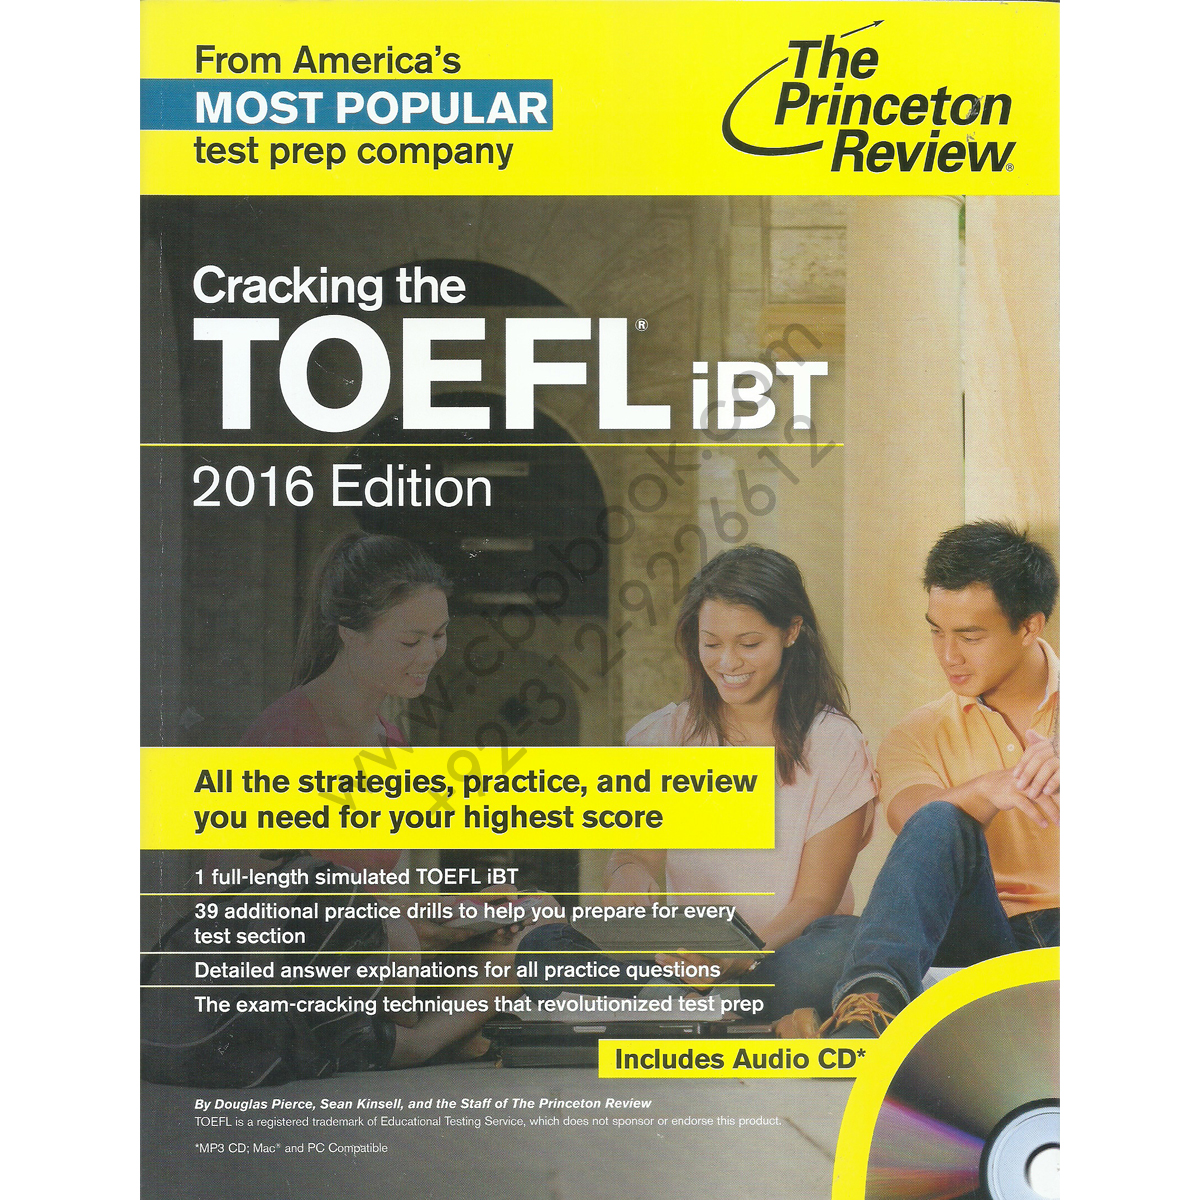 the princeton review cracking the toefl ibt 2016 edition